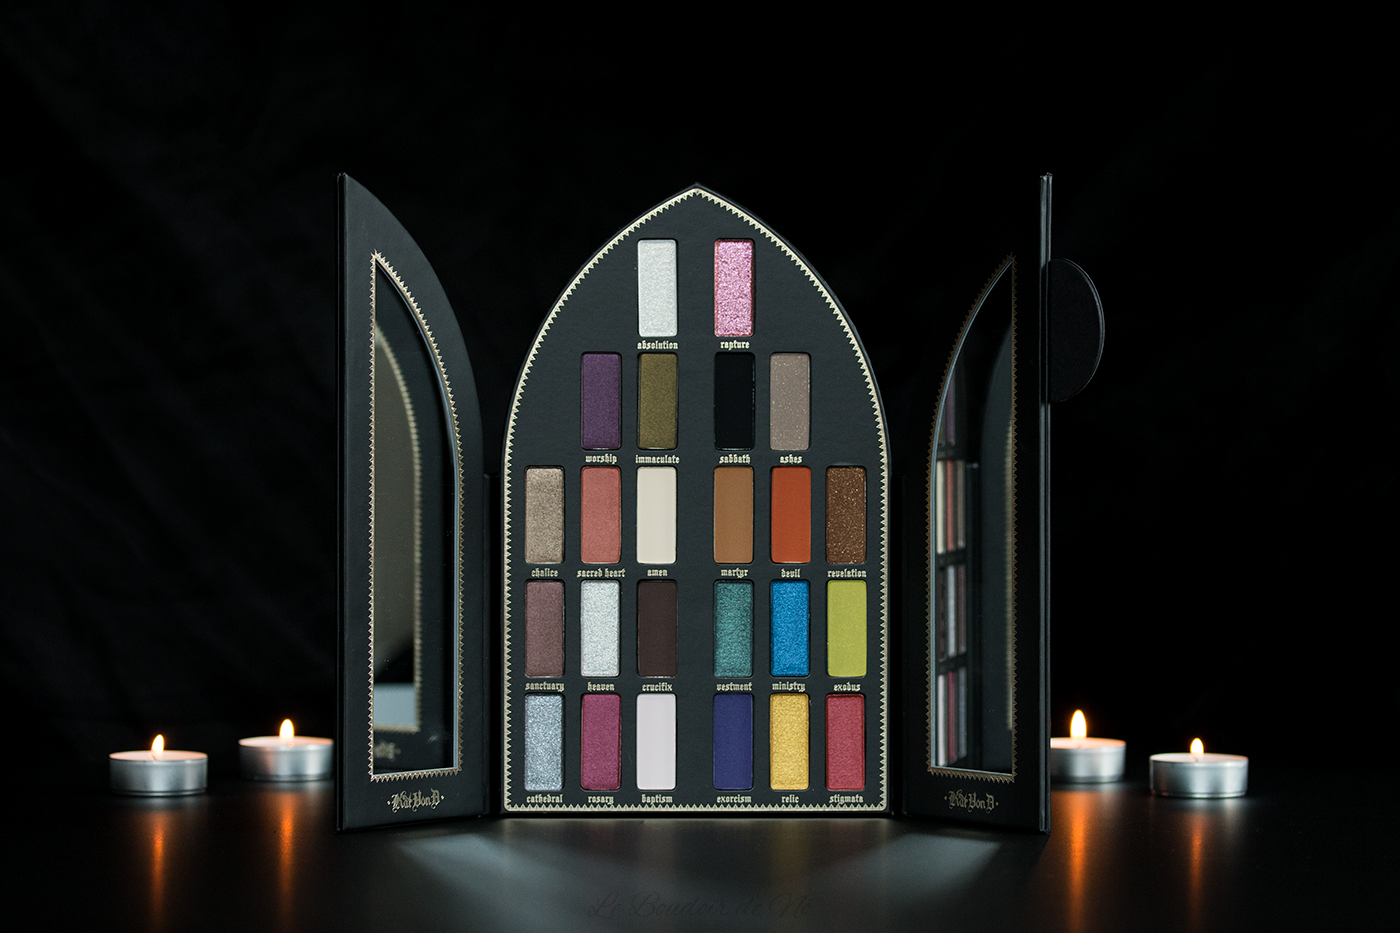 Packshot Palette Saint Sinner Kat Von D beauty